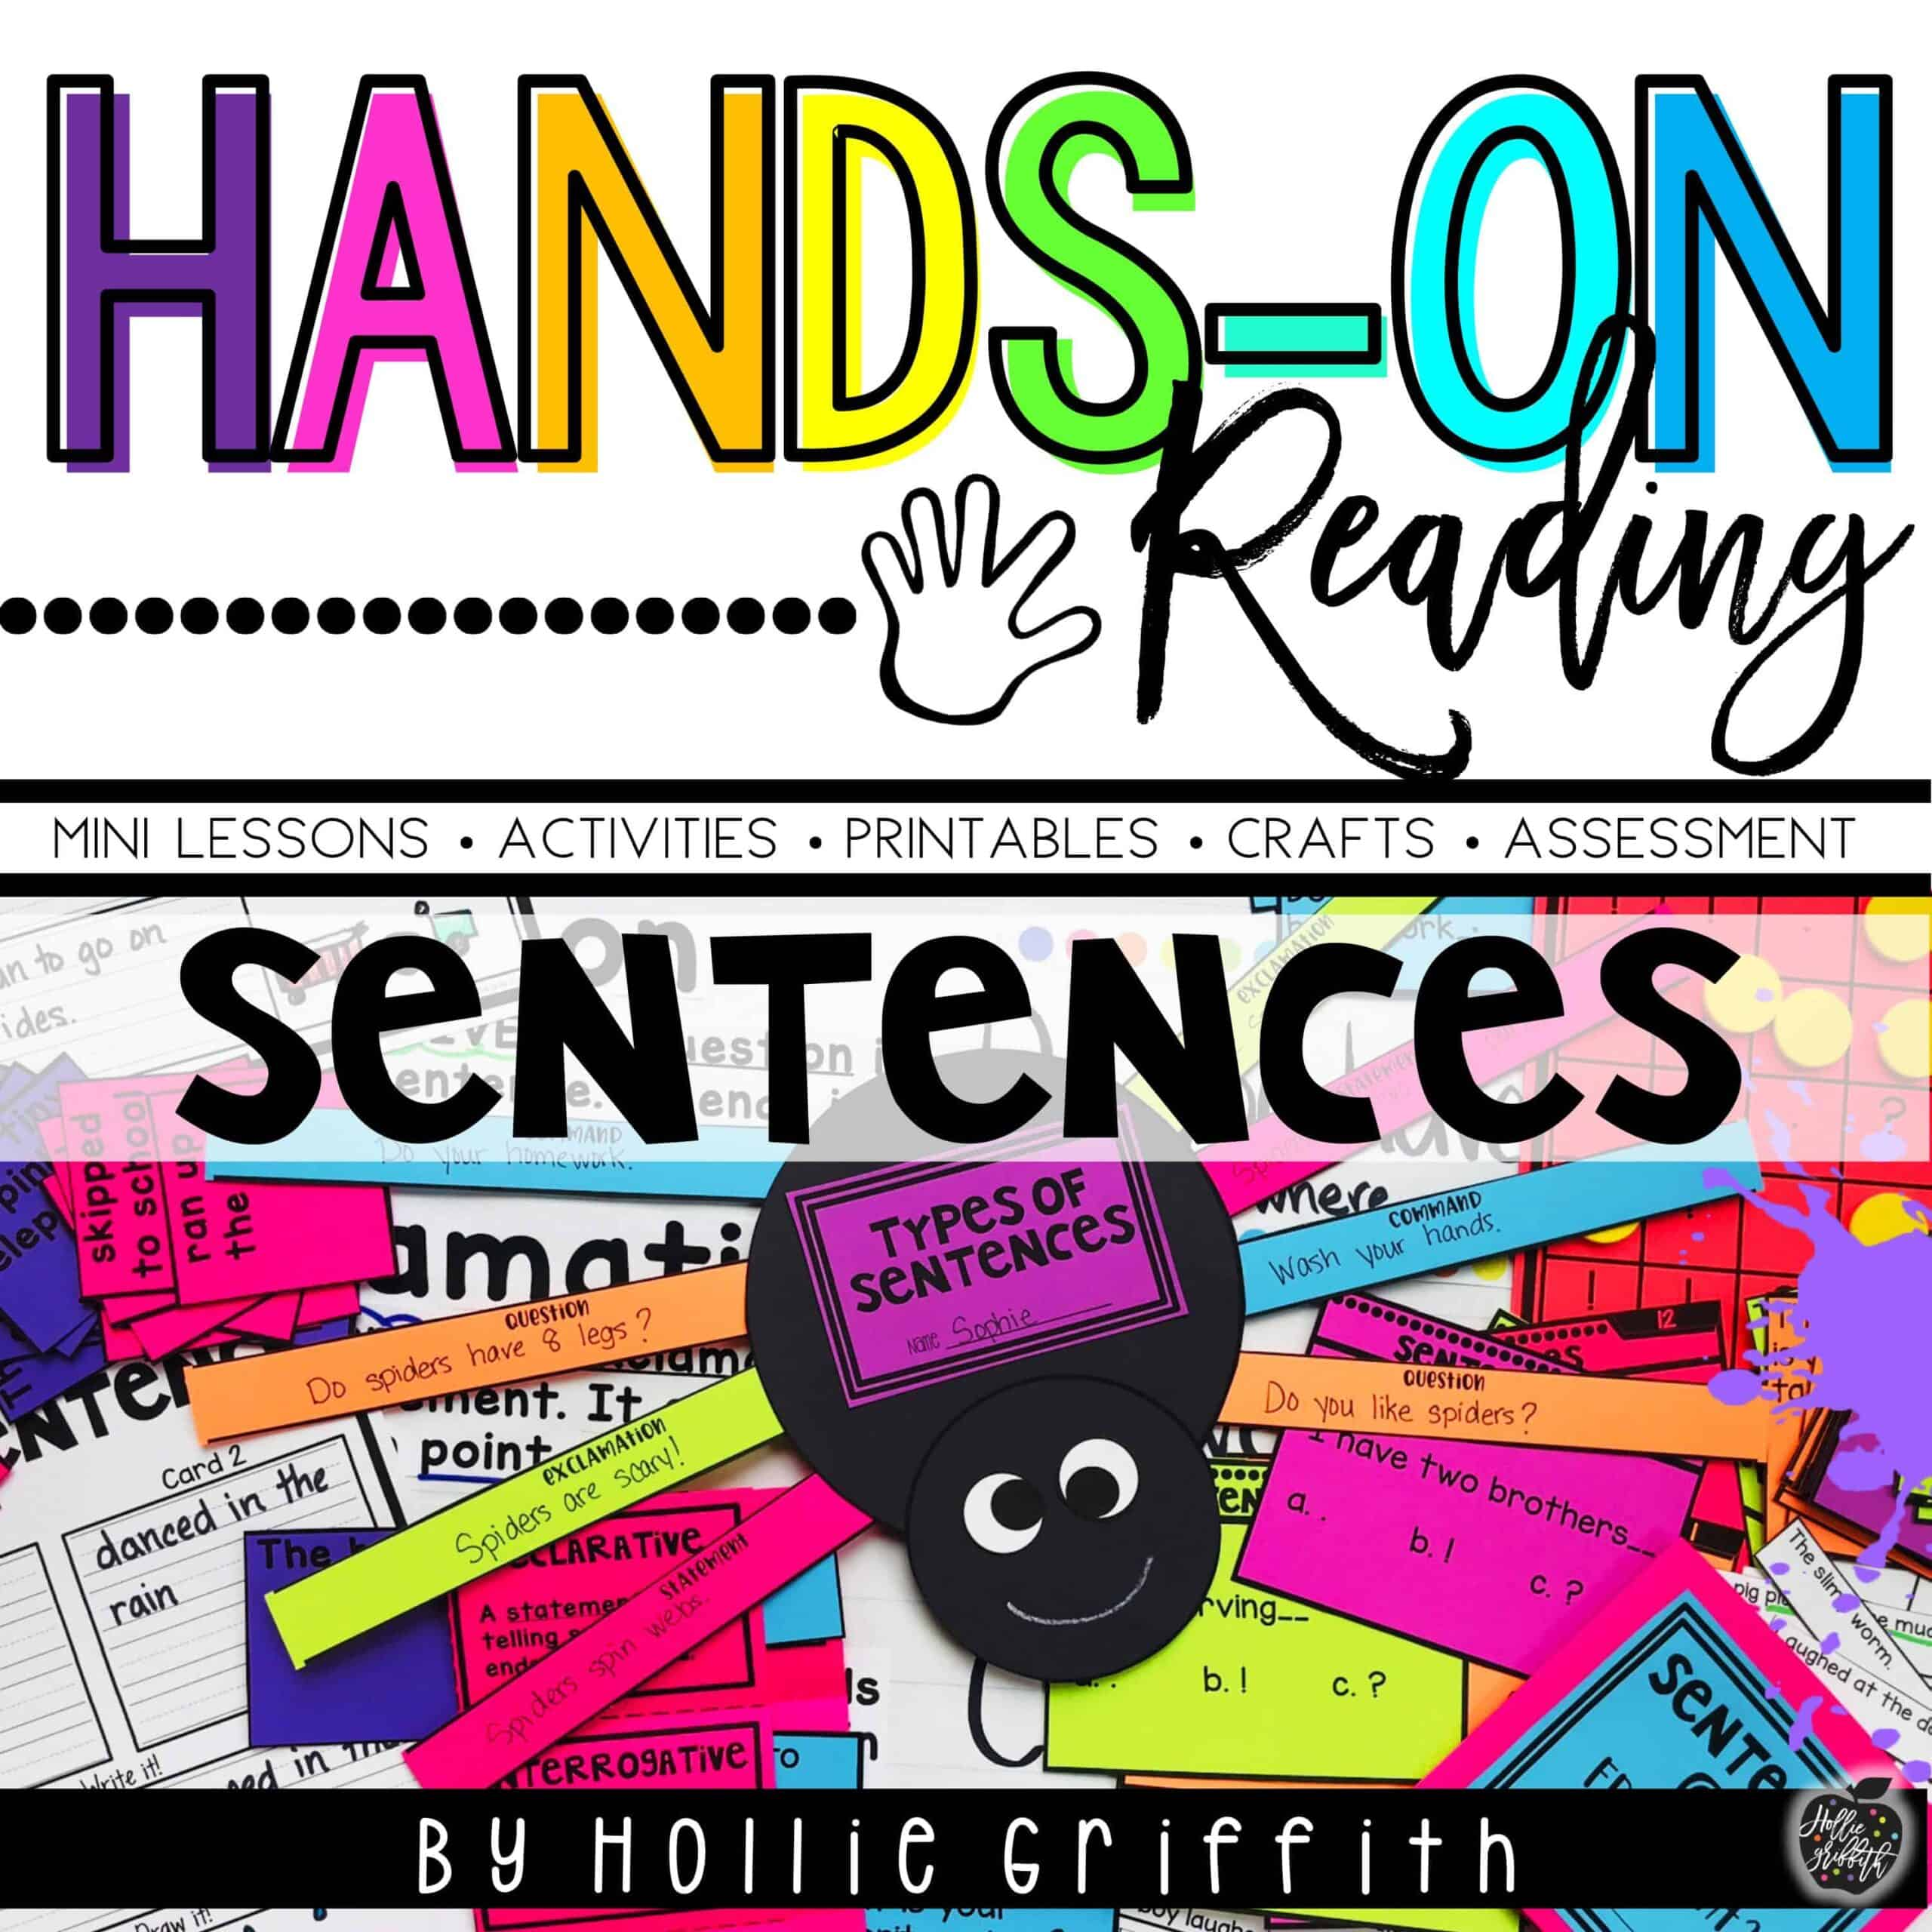 Building Sentences, Expanding Sentences & Types of Sentences